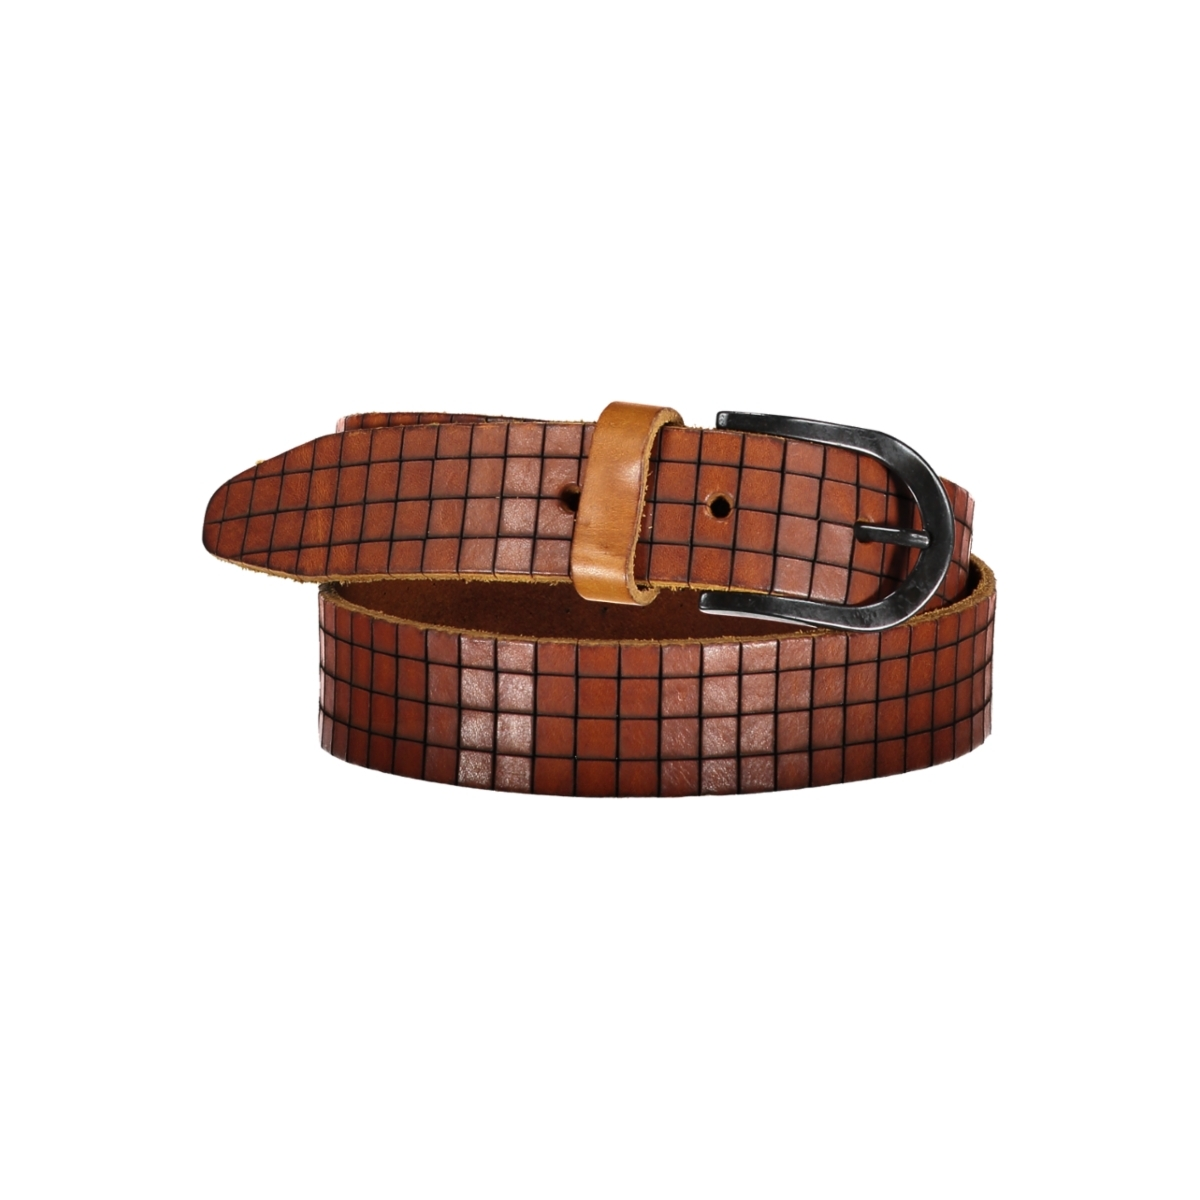 35820 red temple riem cognac